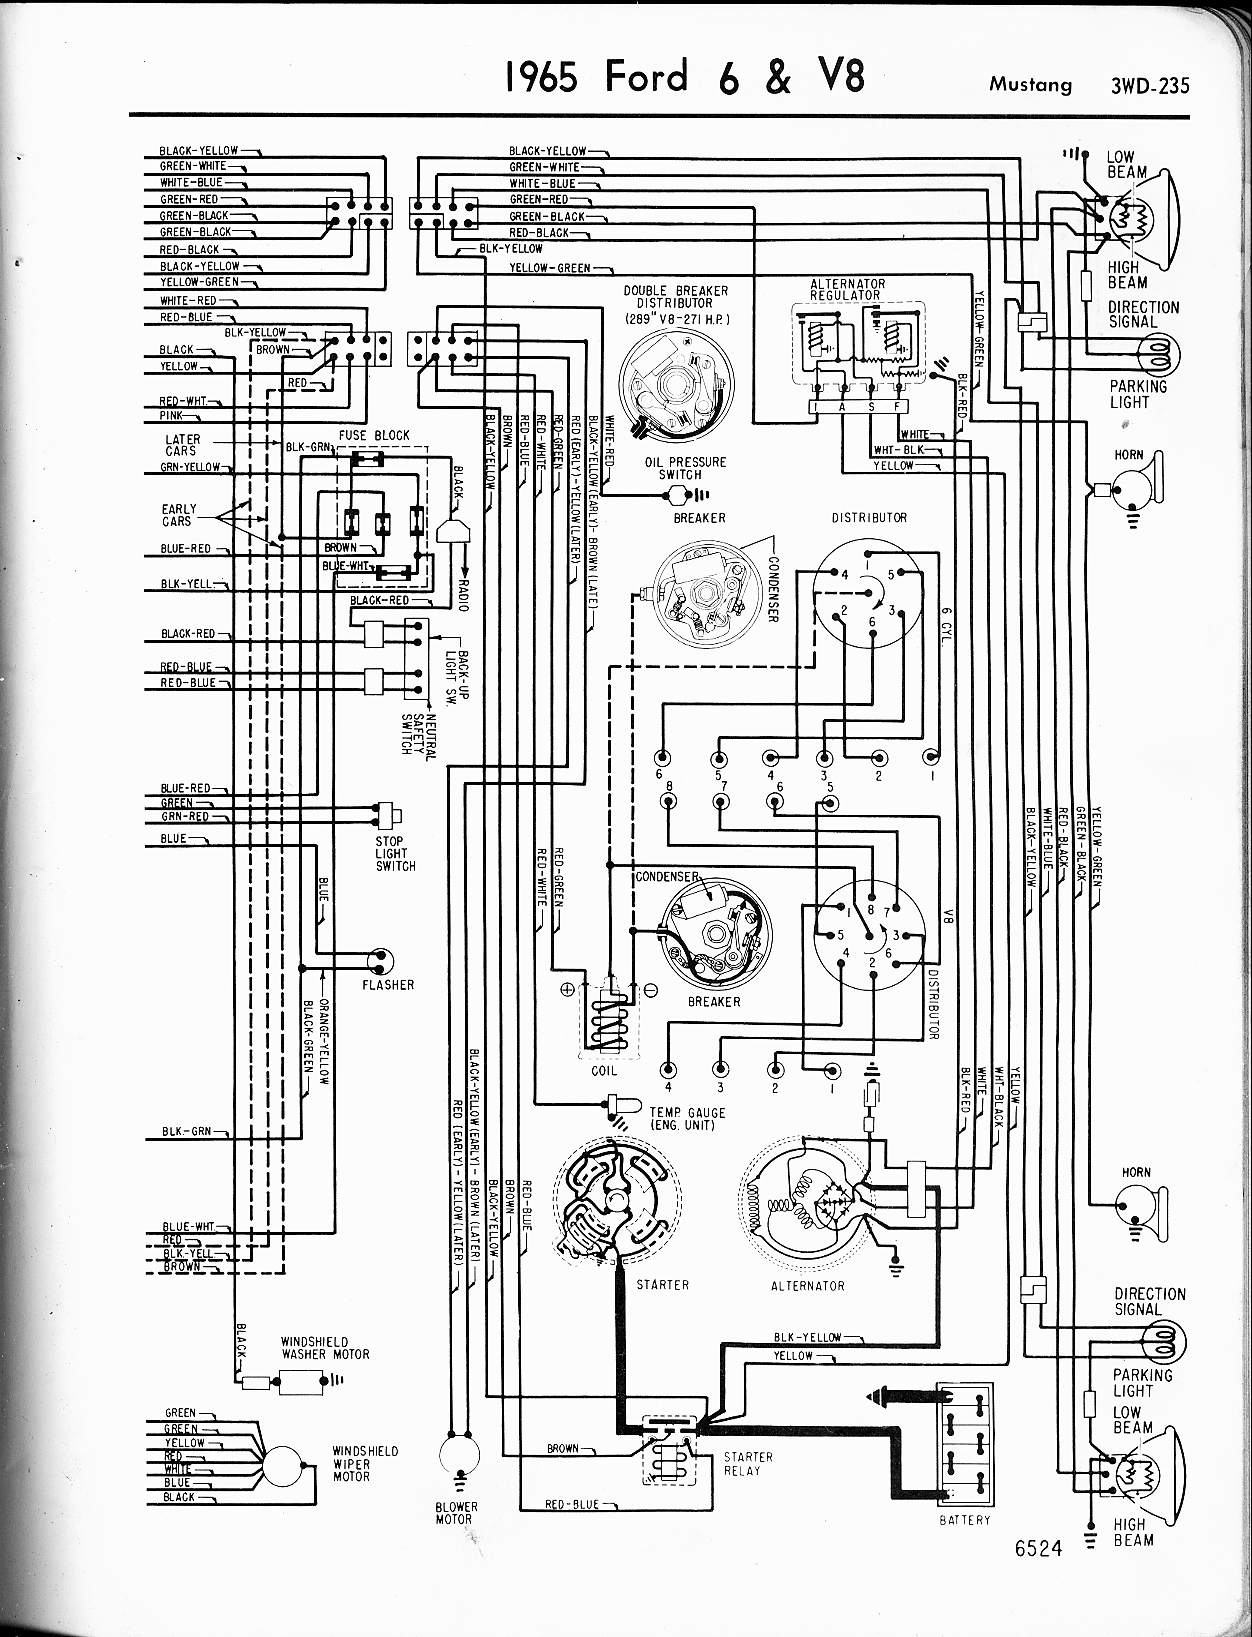 1970 Ford Torino Wiring Diagram 31 Images 1968 Pontiac Vacuum Diagrams 1965 Mustang 2 At